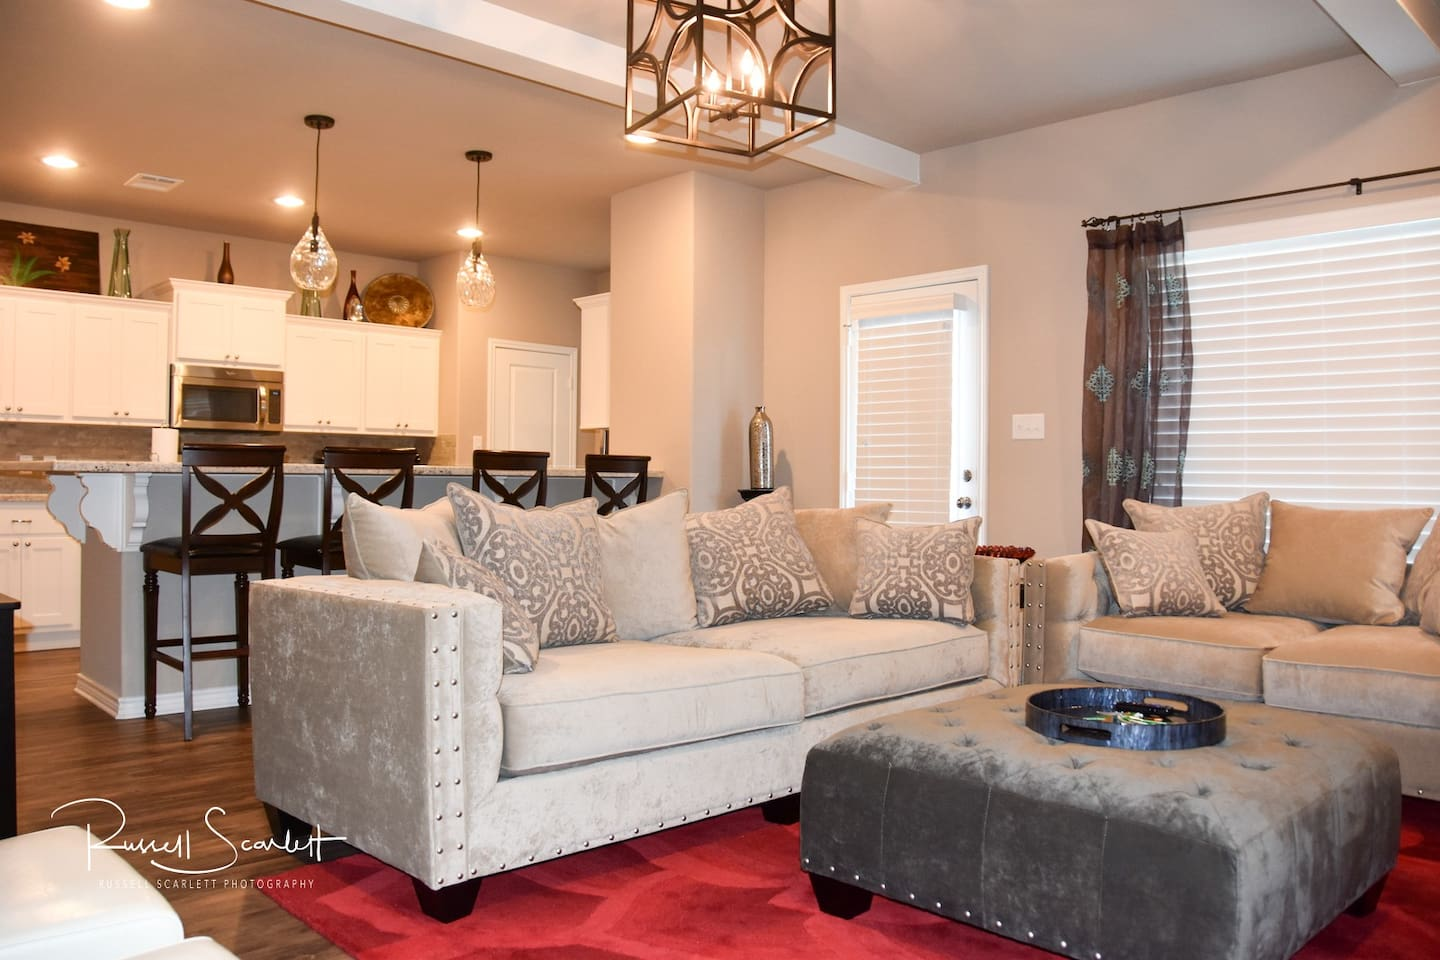 Stylish furnishings and decor! Comfortable place to relax and enjoy yourself.